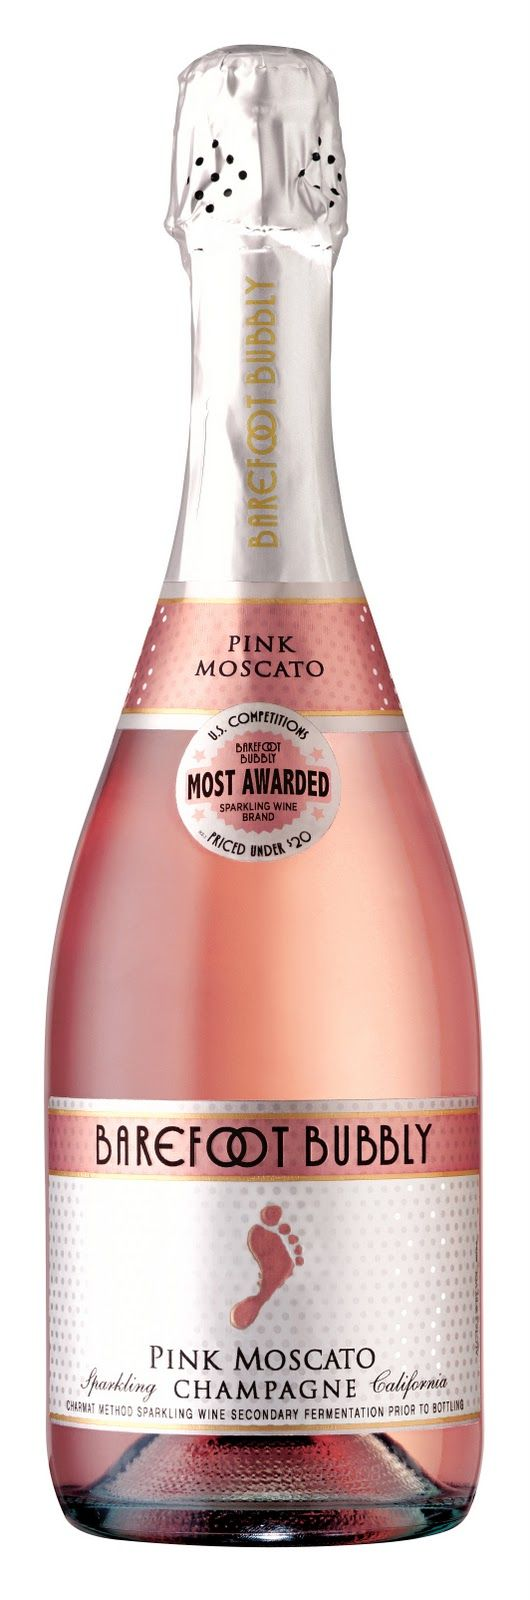 Yummy..great with strawberries on Valentines Day!